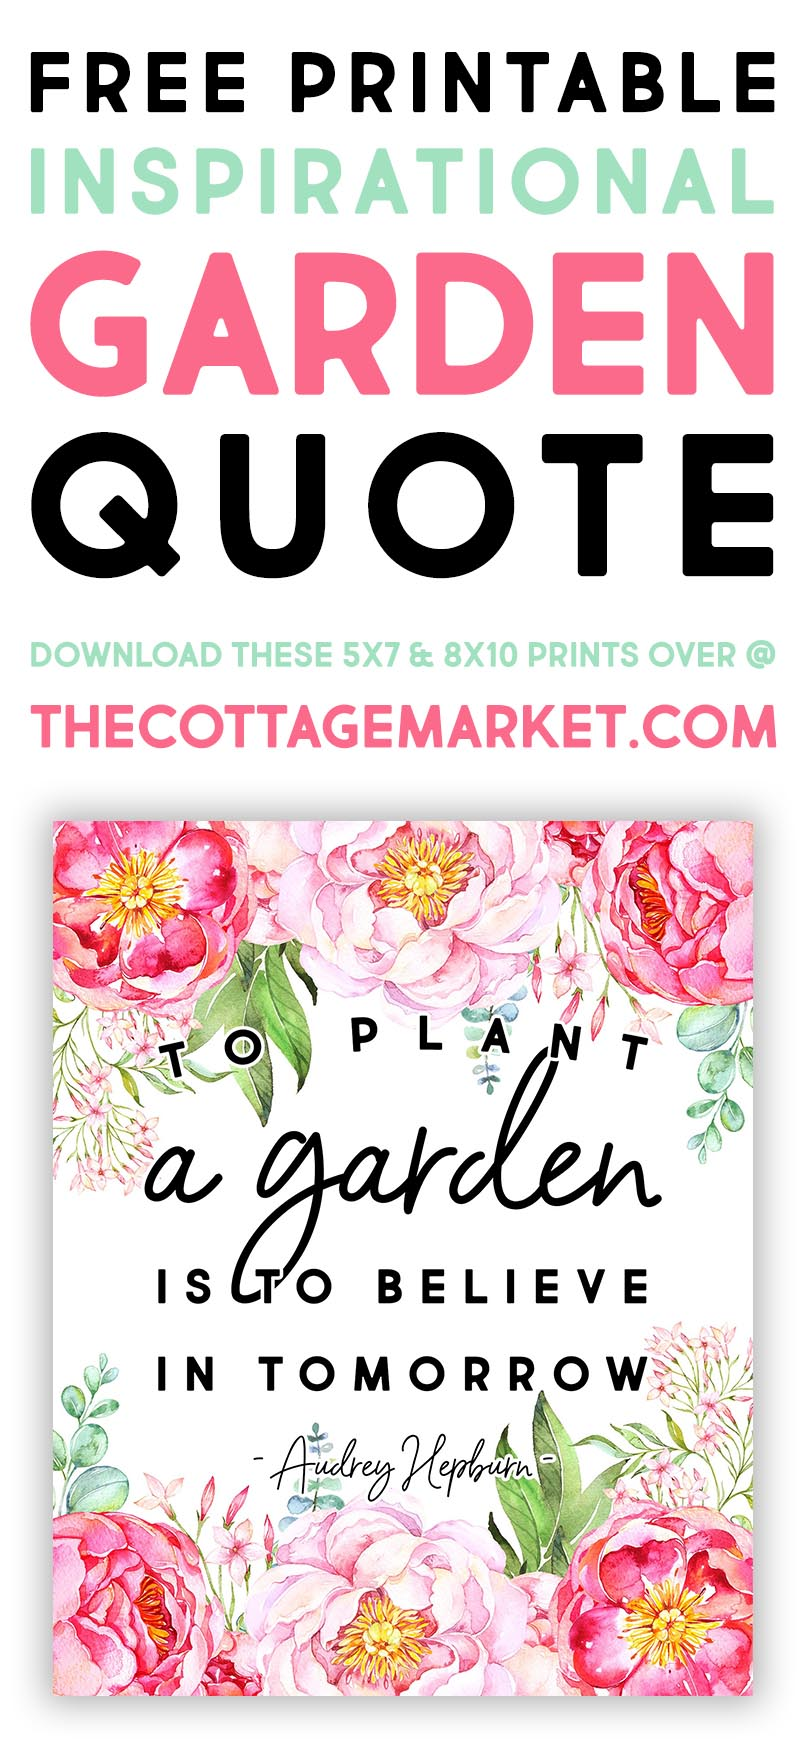 This Free Printable Inspiration Garden Quote is just what the Doctor ordered today!  A touch of inspiration and beautiful blooms will bring some joy to your heart!